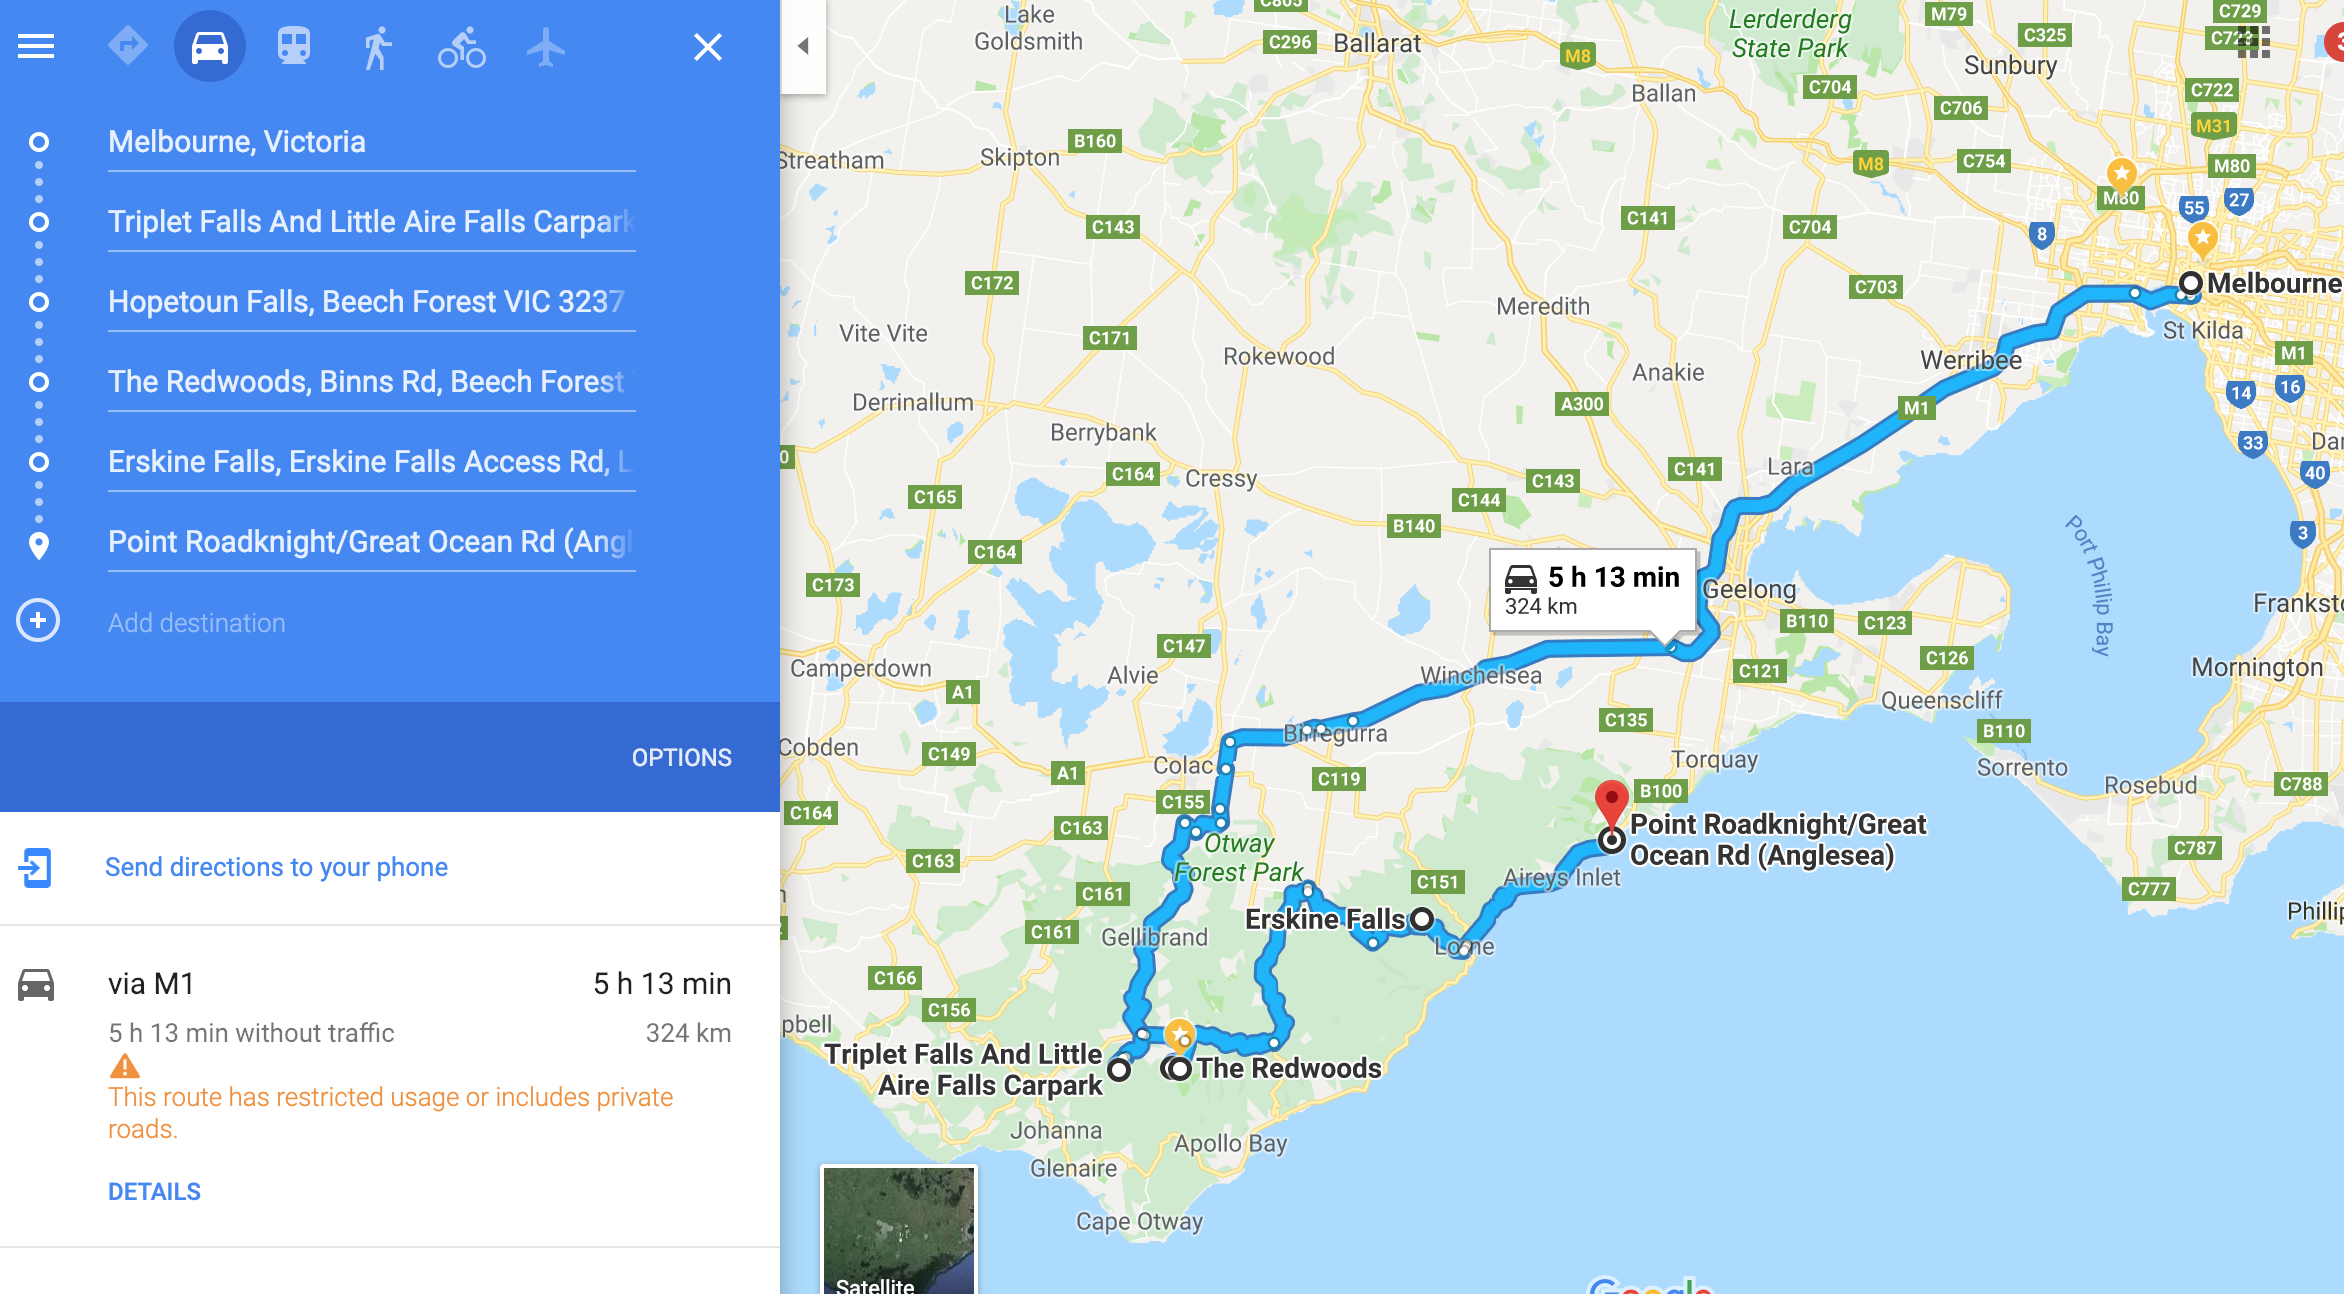 Otways & Ocean Road Trip